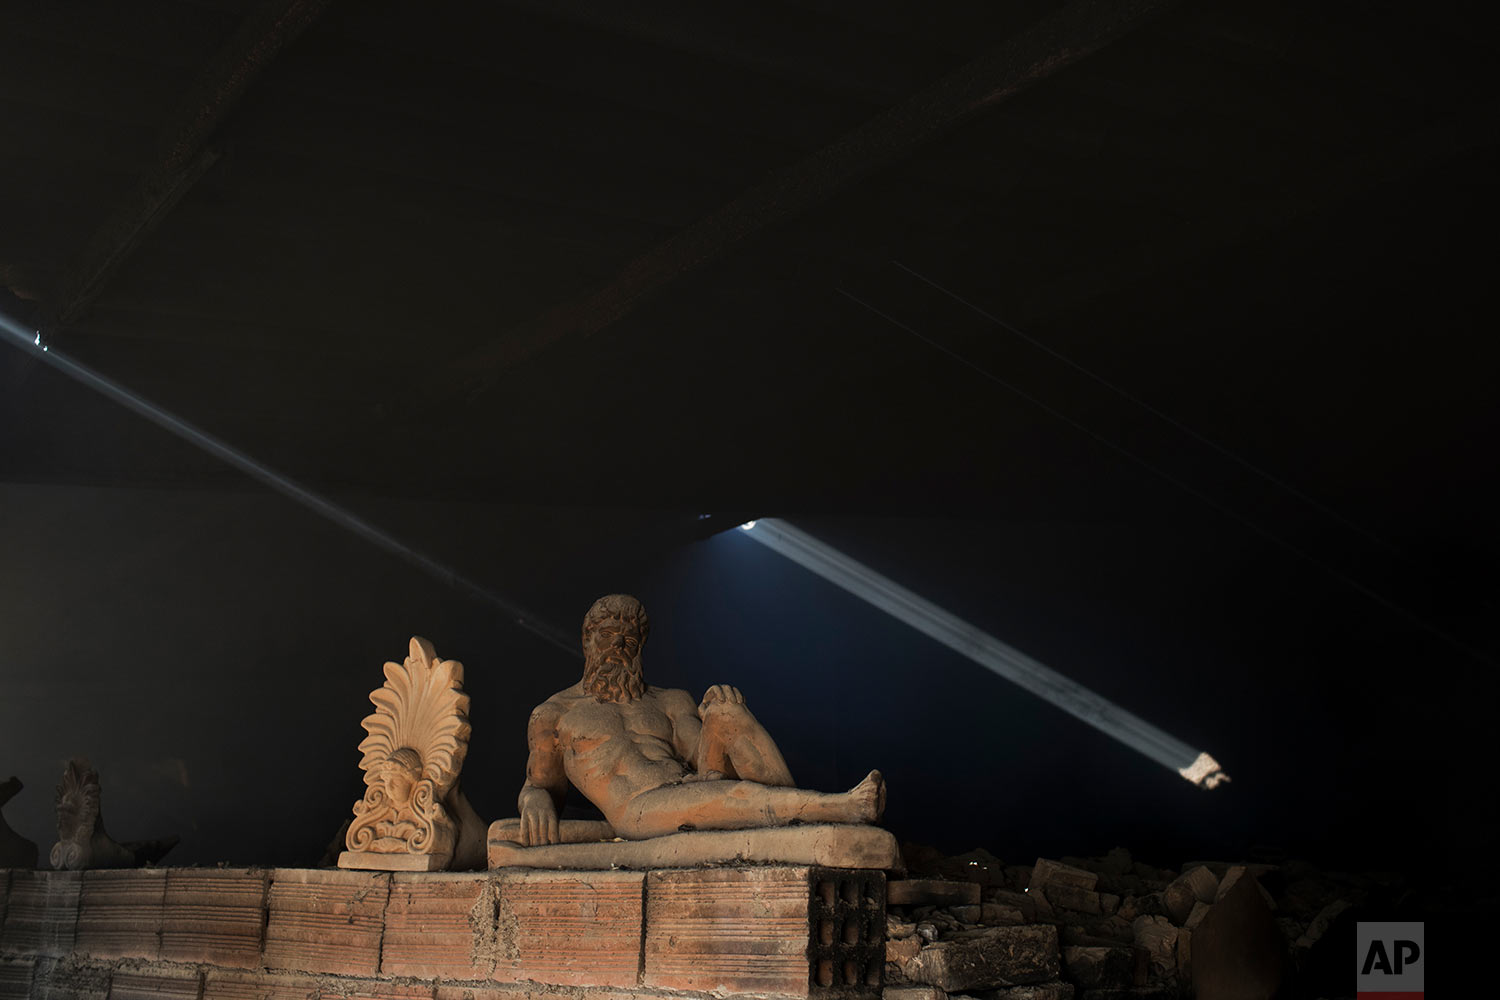 In this Friday, Nov. 20, 2017 photo, a sooty, dust-covered terracotta statue of Greek mythological hero Hercules, a son of Zeus, stands on top of a burning furnace next to an antefix in Haralambos Goumas' sculpture and ceramic workshop, in the Egaleo suburb of Athens. (AP Photo/Petros Giannakouris)